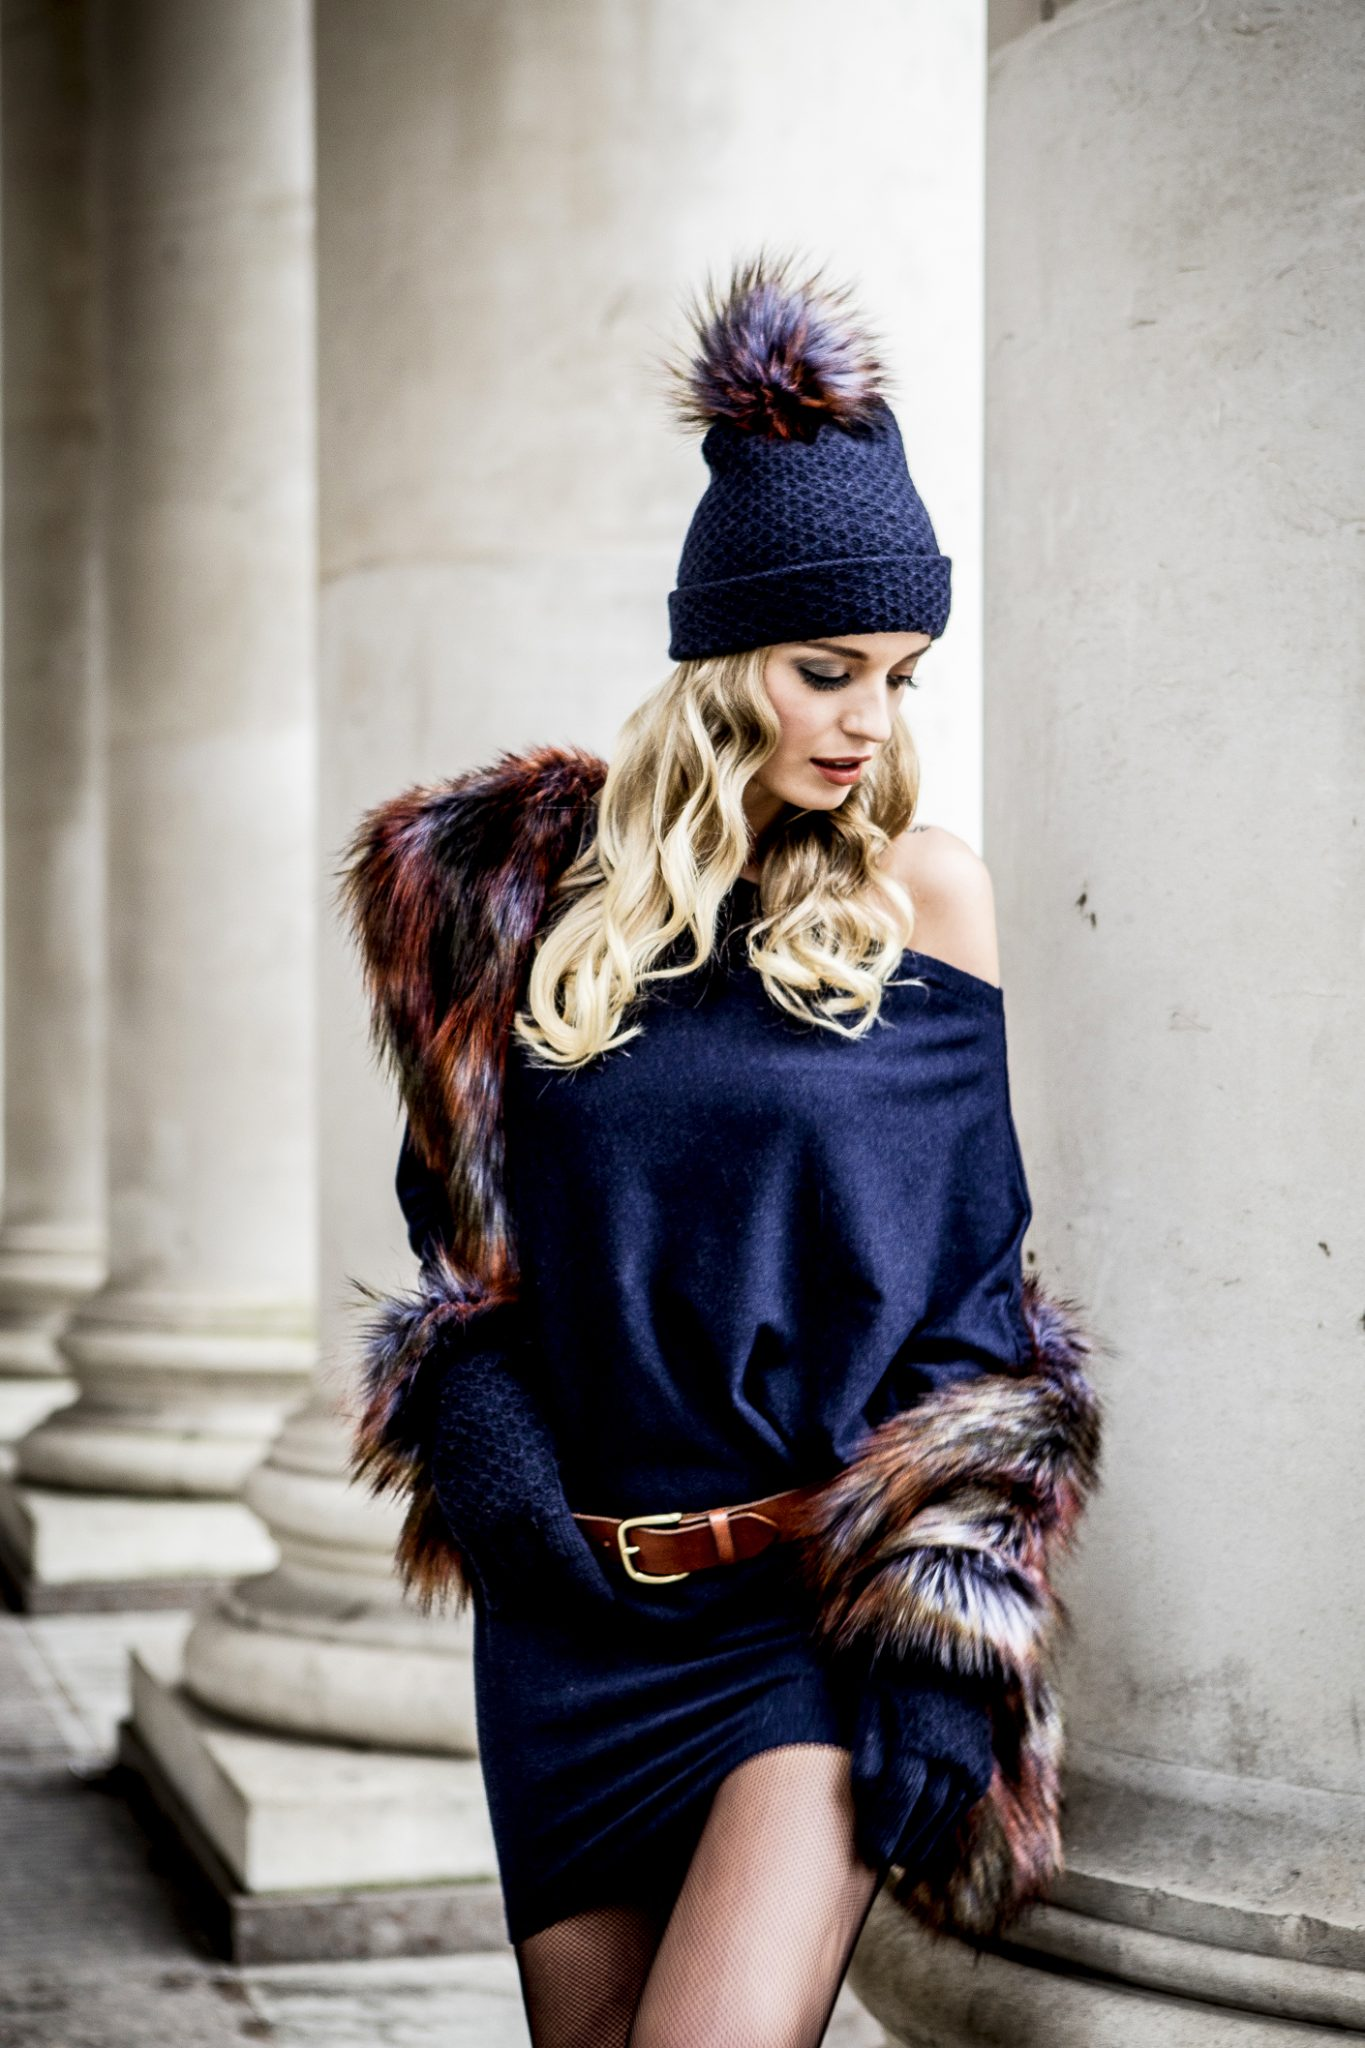 fashion-and-advertising-photographer-for-womenswear-in-manchester-and-london